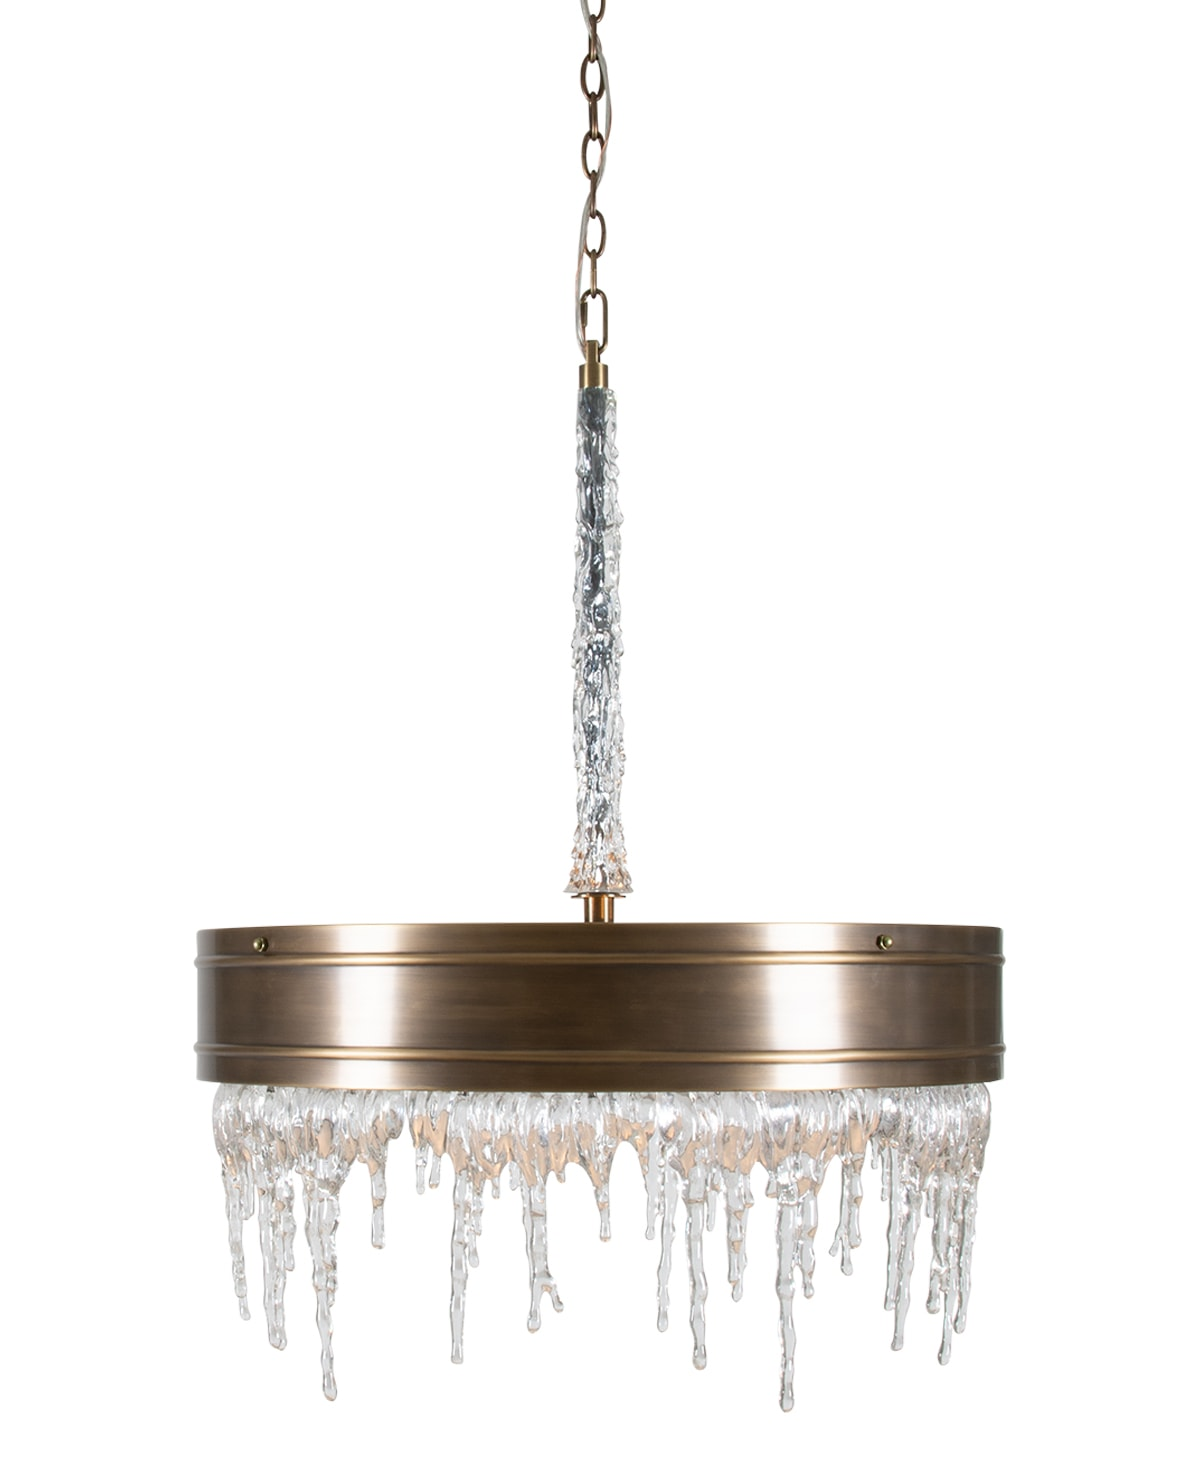 FlowDecor Natalie Chandelier in brass with antique brass finish and acrylic (# 6054)